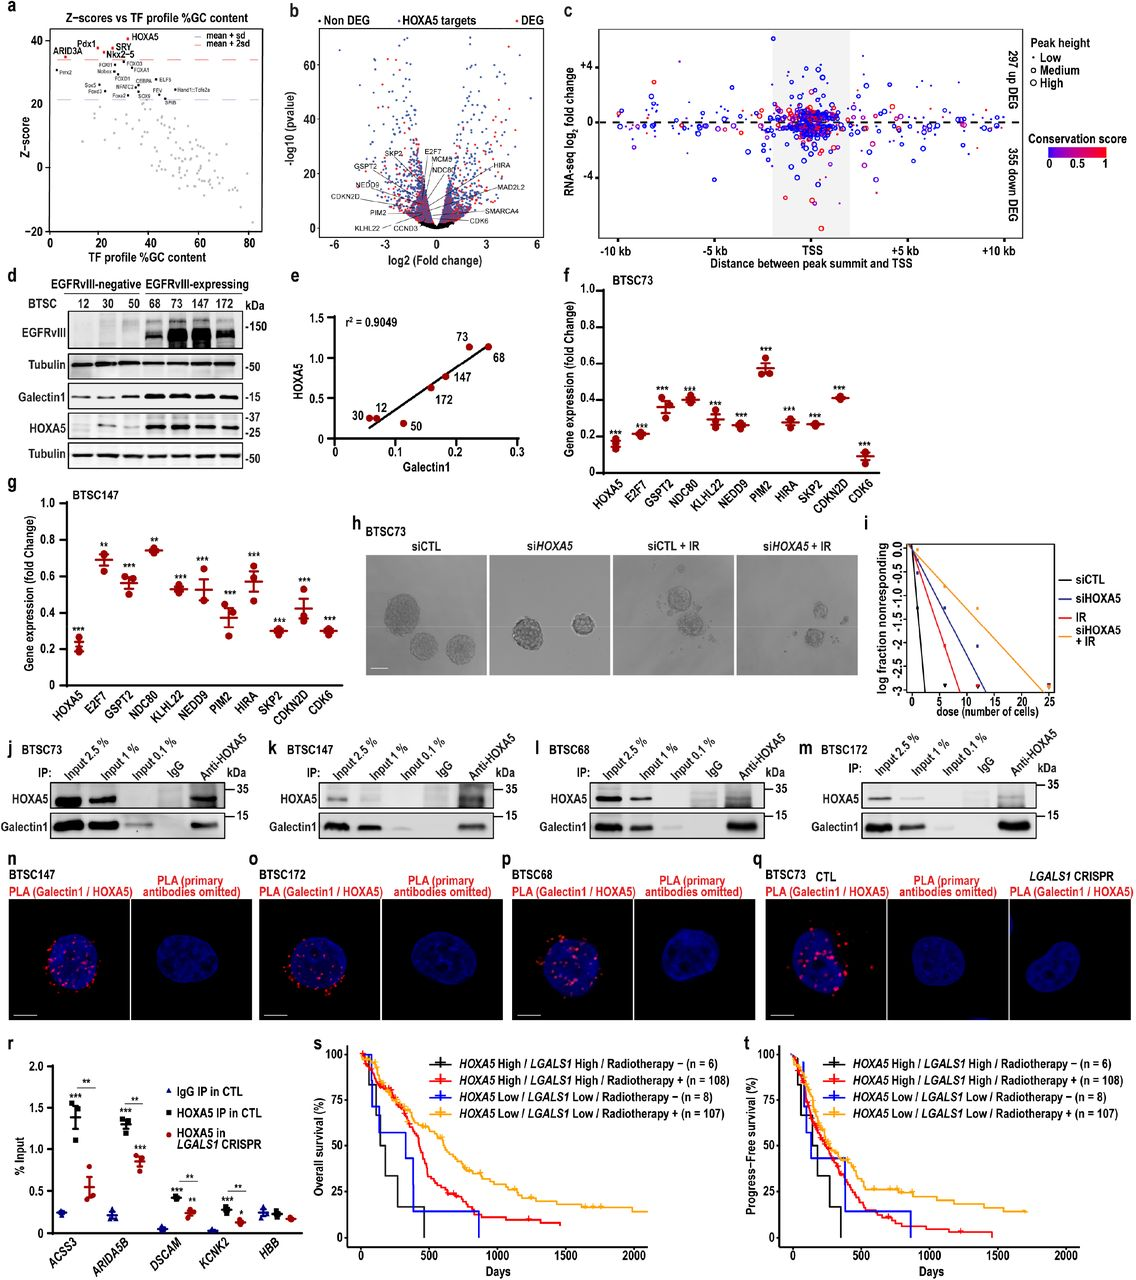 Galectin1 interacts with HOXA5 endogenously in EGFRvIII-expressing BTSCs. ( a ) LGALS1 -differentially genes from RNA-seq analysis were subjected to enrichment analysis of transcription factor (TF) binding motifs using oPOSSUM-3 software. High-scoring or over-represented TF binding site profiles were computed as having z-scores above the mean + 2 x standard deviation (red dotted line). ( b ) Volcano plot representing the HOXA5 targets genes among the LGALS1 -differentially-regulated genes is shown. LGALS1 -differentially regulated genes that possess HOXA5 binding sites (HOXA5 targets) are reported as blue dots, LGALS1 -differentially-regulated genes (DEGs) that do not possess HOXA5 binding sites are reported as red dots and the non-differentially regulated genes (Non DEGs) are represented as black dots. Black lines show RT-qPCR validated cell cycle related genes. ( c ) Relative positions of HOXA5 peaks, obtained from ChIP-seq analysis in human carcinoma cells, to the adjacent TSS of LGALS1 -differentially regulated genes from RNA-seq analysis are shown. The x-axis indicates the distance between peak centers and the TSS of adjacent LGALS1 -differentially regulated genes. The y-axis denotes the expression ratios (log2) of the LGALS1 -differentially regulated gene. Circle size indicates HOXA5 peak height, and color denotes the conservation score of HOXA5 peaks. ( d ) BTSCs were analyzed by immunoblotting using the antibodies indicated on the blots. Wild type EGFR and EGFRvIII bands are marked with * and **, respectively. ( e ) Correlation of HOXA5 expression with galectin1 expression was obtained by running Pearson analyses on the densitometric values of protein expression normalized to tubulin. ( f-g ) BTSCs were electroporated with siCTL or siRNA against HOXA5 (si HOXA5 ). mRNA levels of the LGALS1 -downregulated genes that possess HOXA5 motifs were evaluated by RT-qPCR. BTSC73 ( f ): *** p = 0.0001 for each pairwise comparison; BTSC147 ( g ): *** p = 0.0001 for each